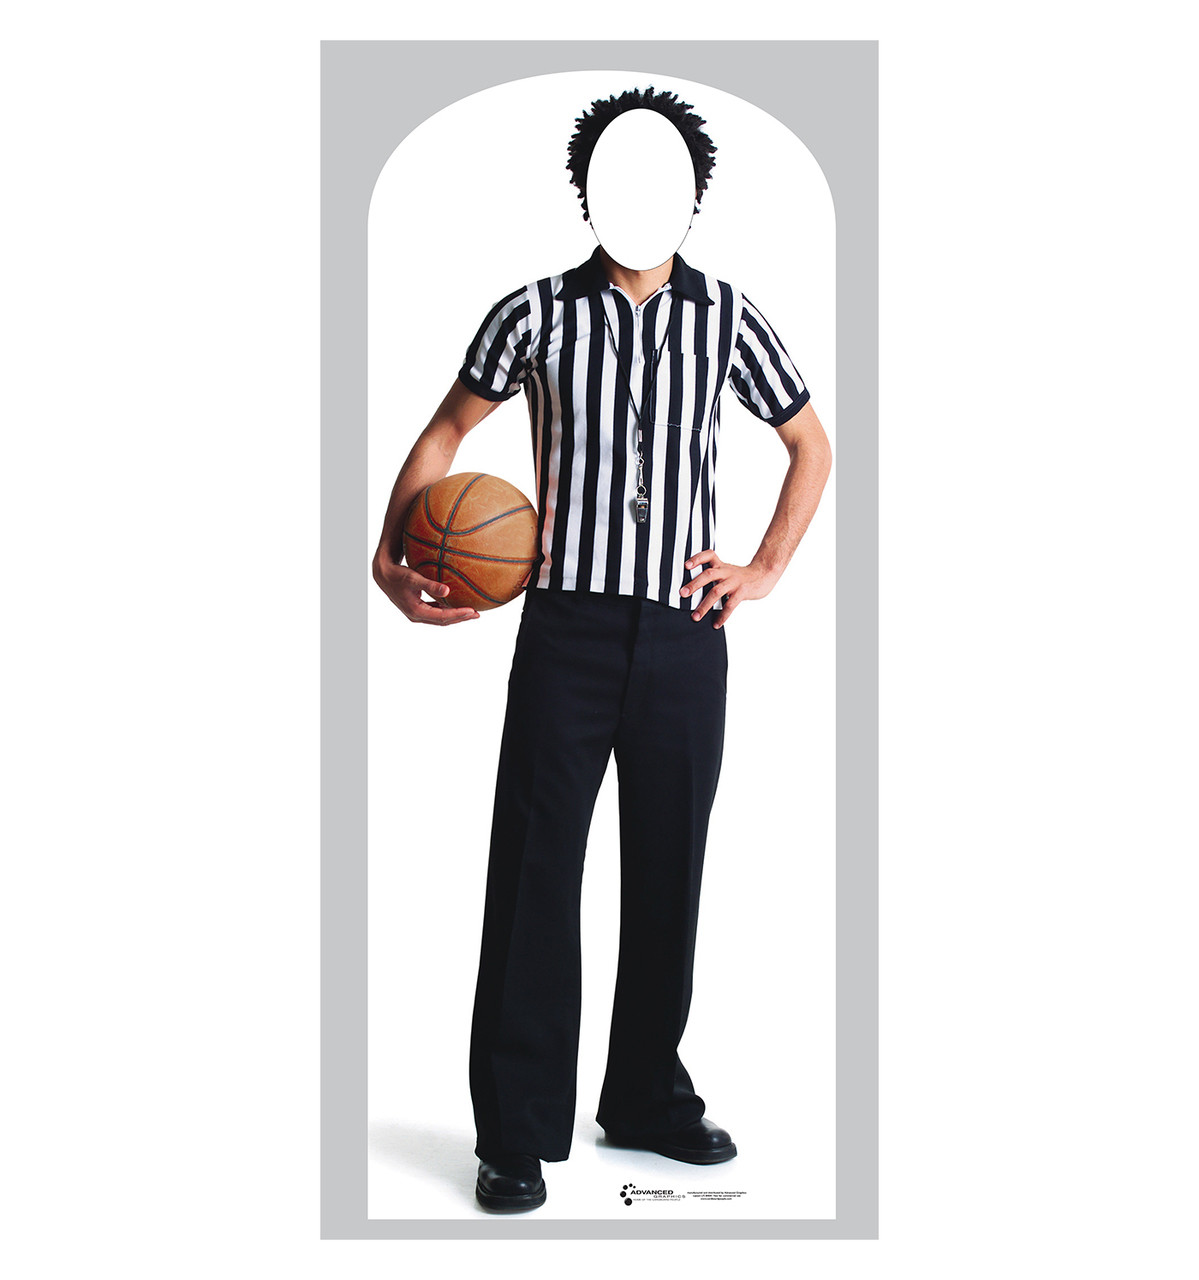 Life-size Referee Stand-In Cardboard Standup | Cardboard Cutout